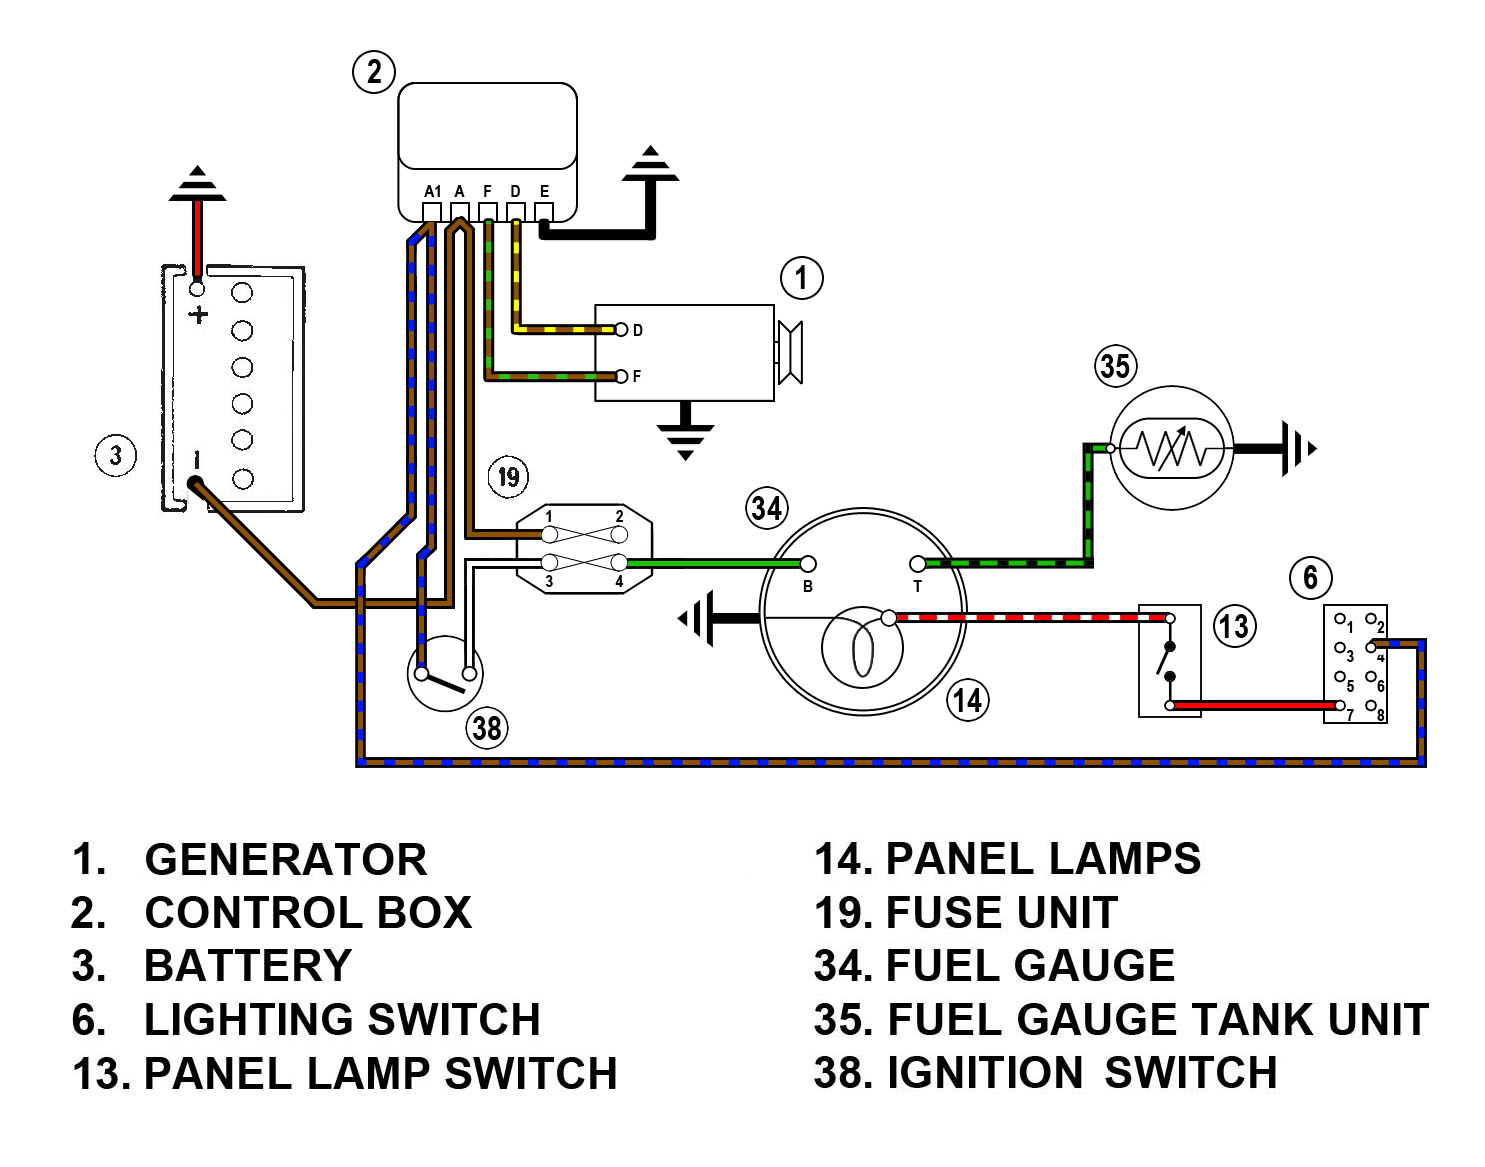 honeywell t651a3018 wiring diagram Collection-Honeywell T651a3018 Wiring Diagram Luxury Equus Fuel Gauge Wiring Diagram Wiring source • 7-e